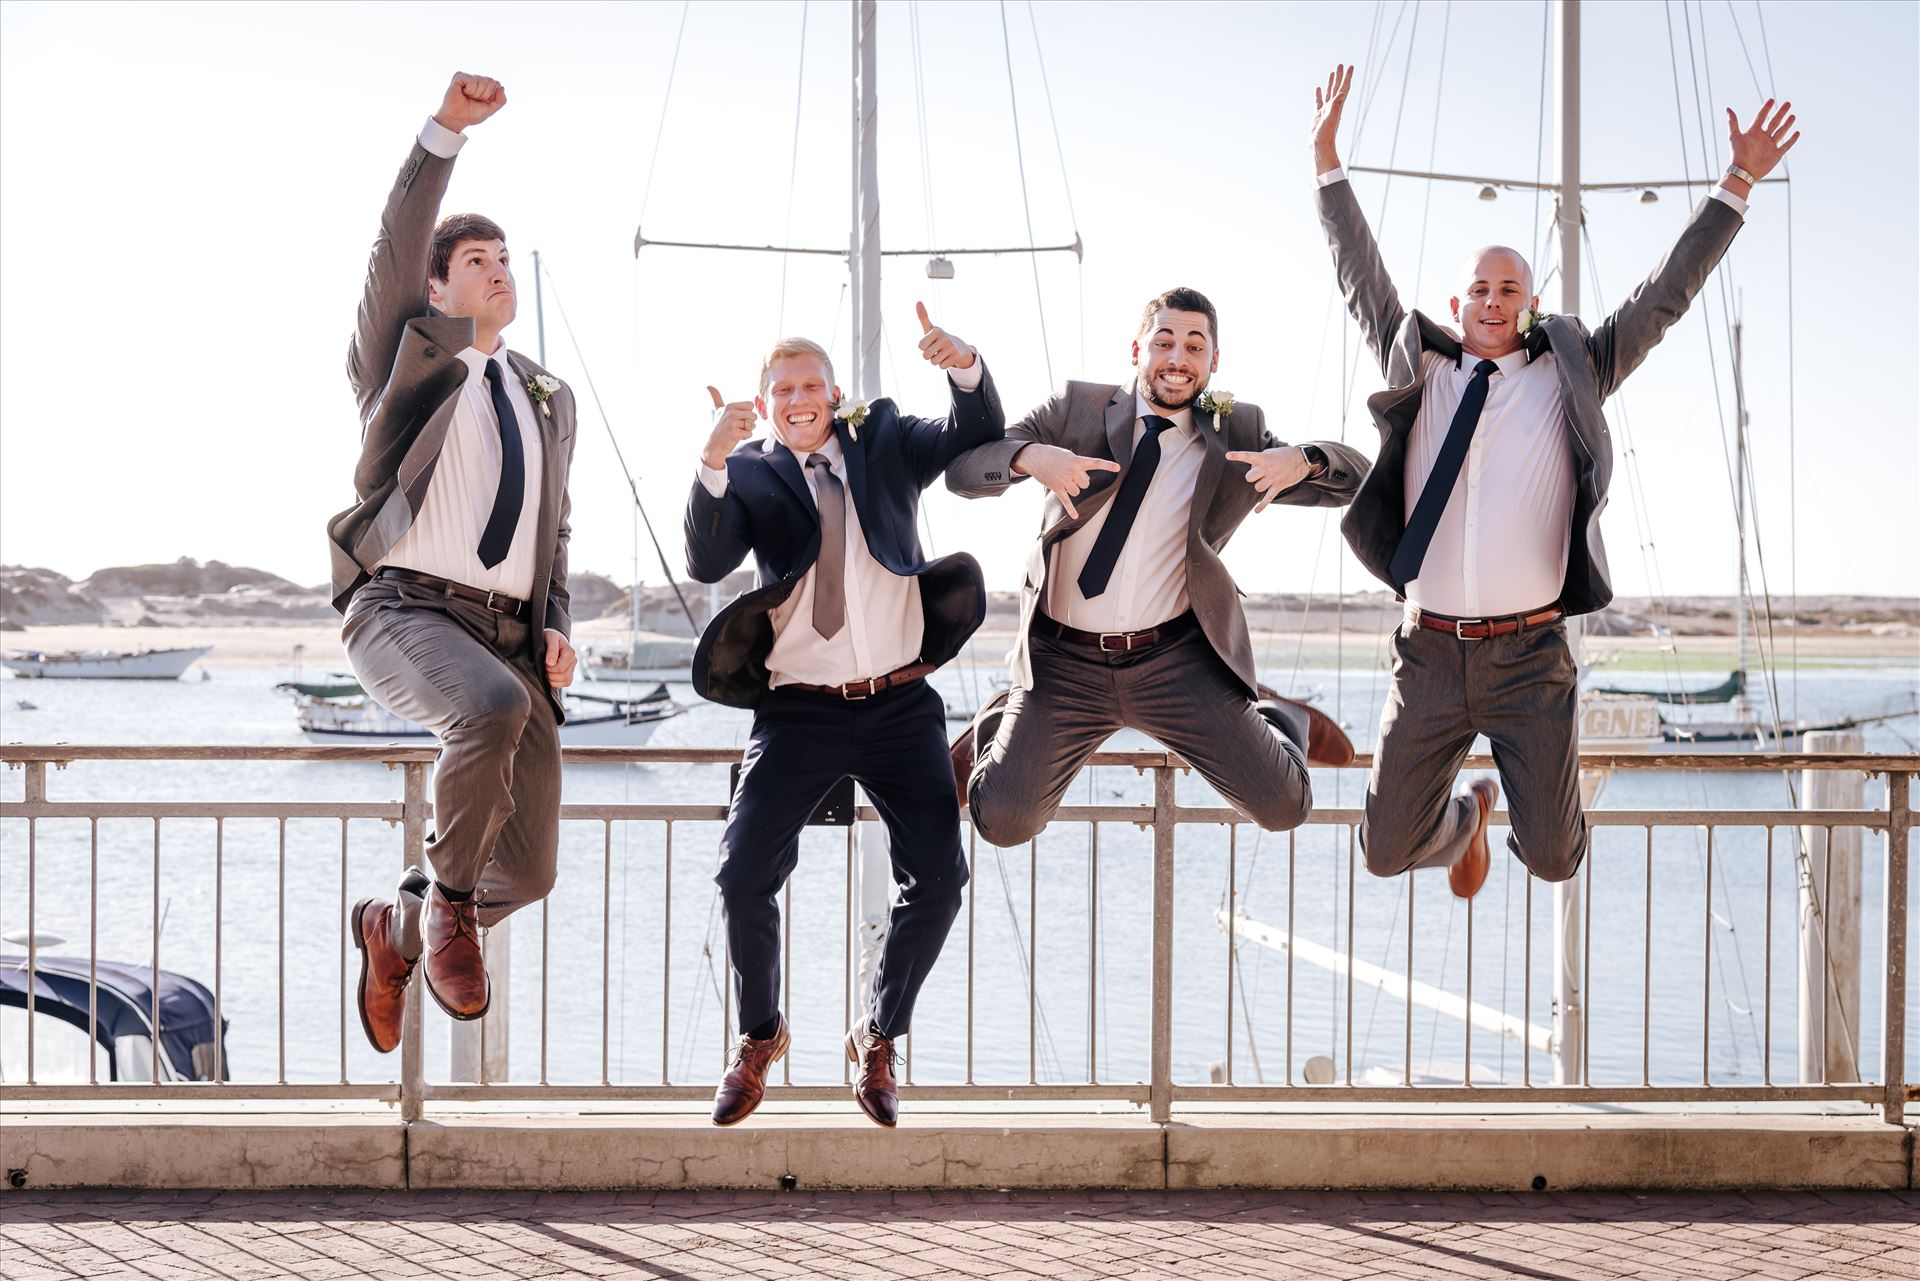 FW-9596.JPG Sarah Williams of Mirror's Edge Photography, a San Luis Obispo Wedding and Engagement Photographer, captures Ryan and Joanna's wedding at the iconic Windows on the Water Restaurant in Morro Bay, California.  Groomsmen jump in front of Morro Rock. by Sarah Williams